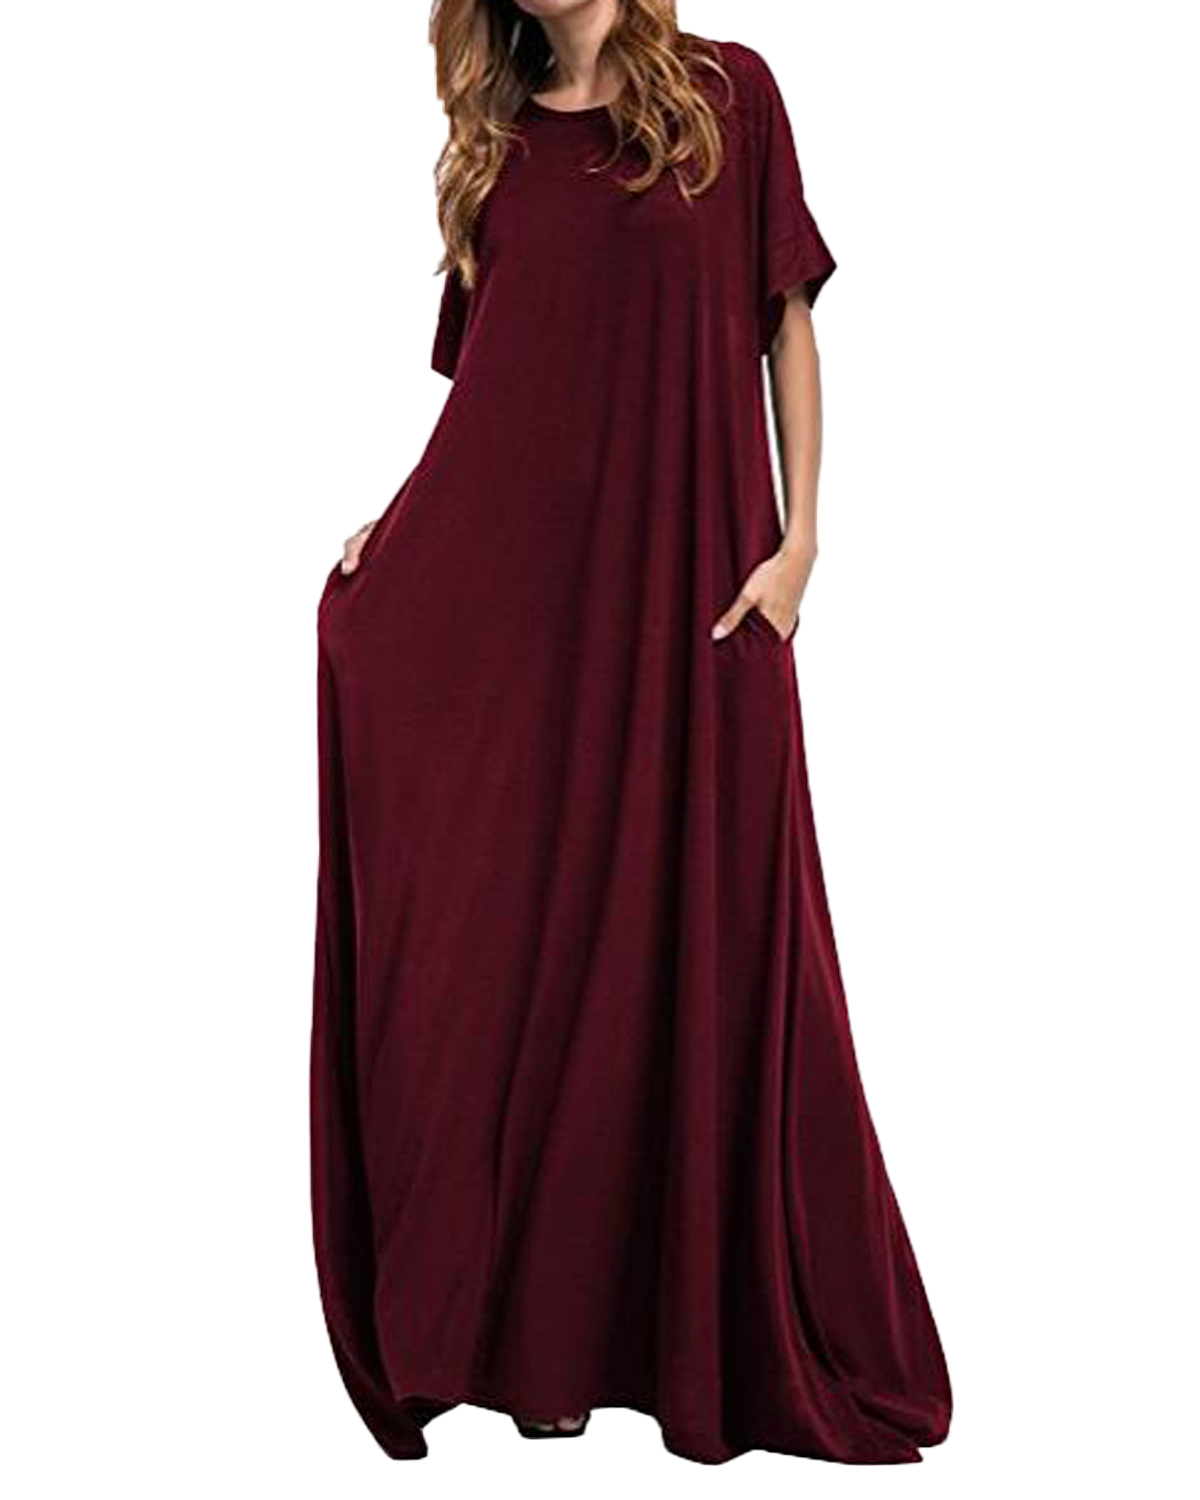 ZANZEA 2019 Long Maxi Dress Women Half Sleeve Solid Round Neck Vintage Plus Size Casual Loose Long Elegant Robe Bodycon Vestidos